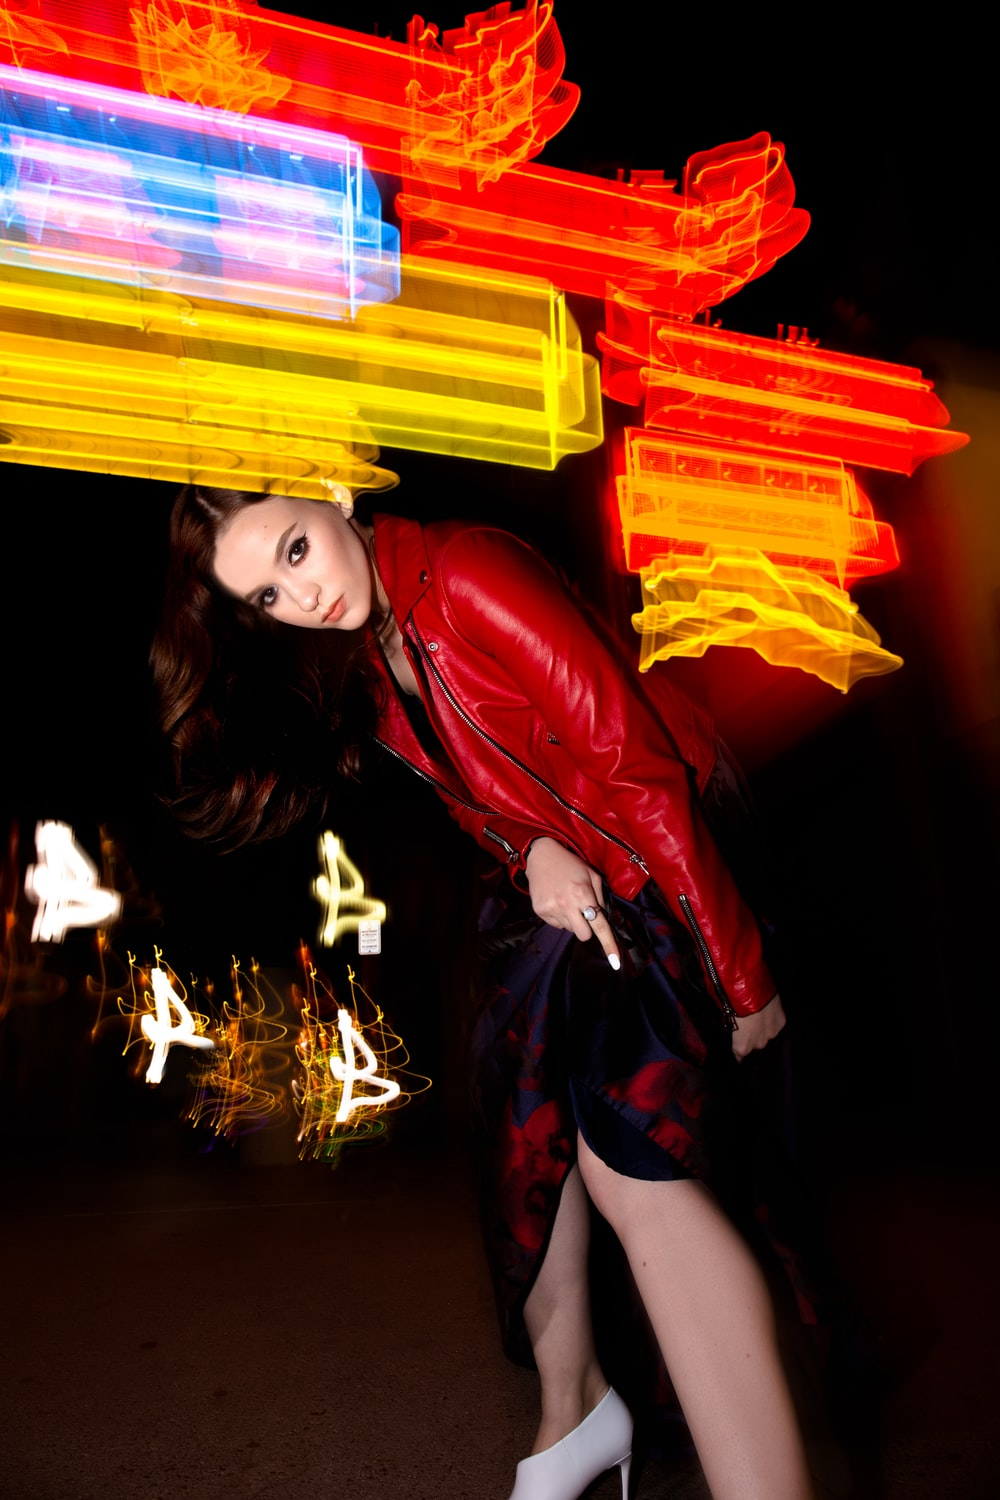 bokeh photography of woman in red leather jacket standing in dark space